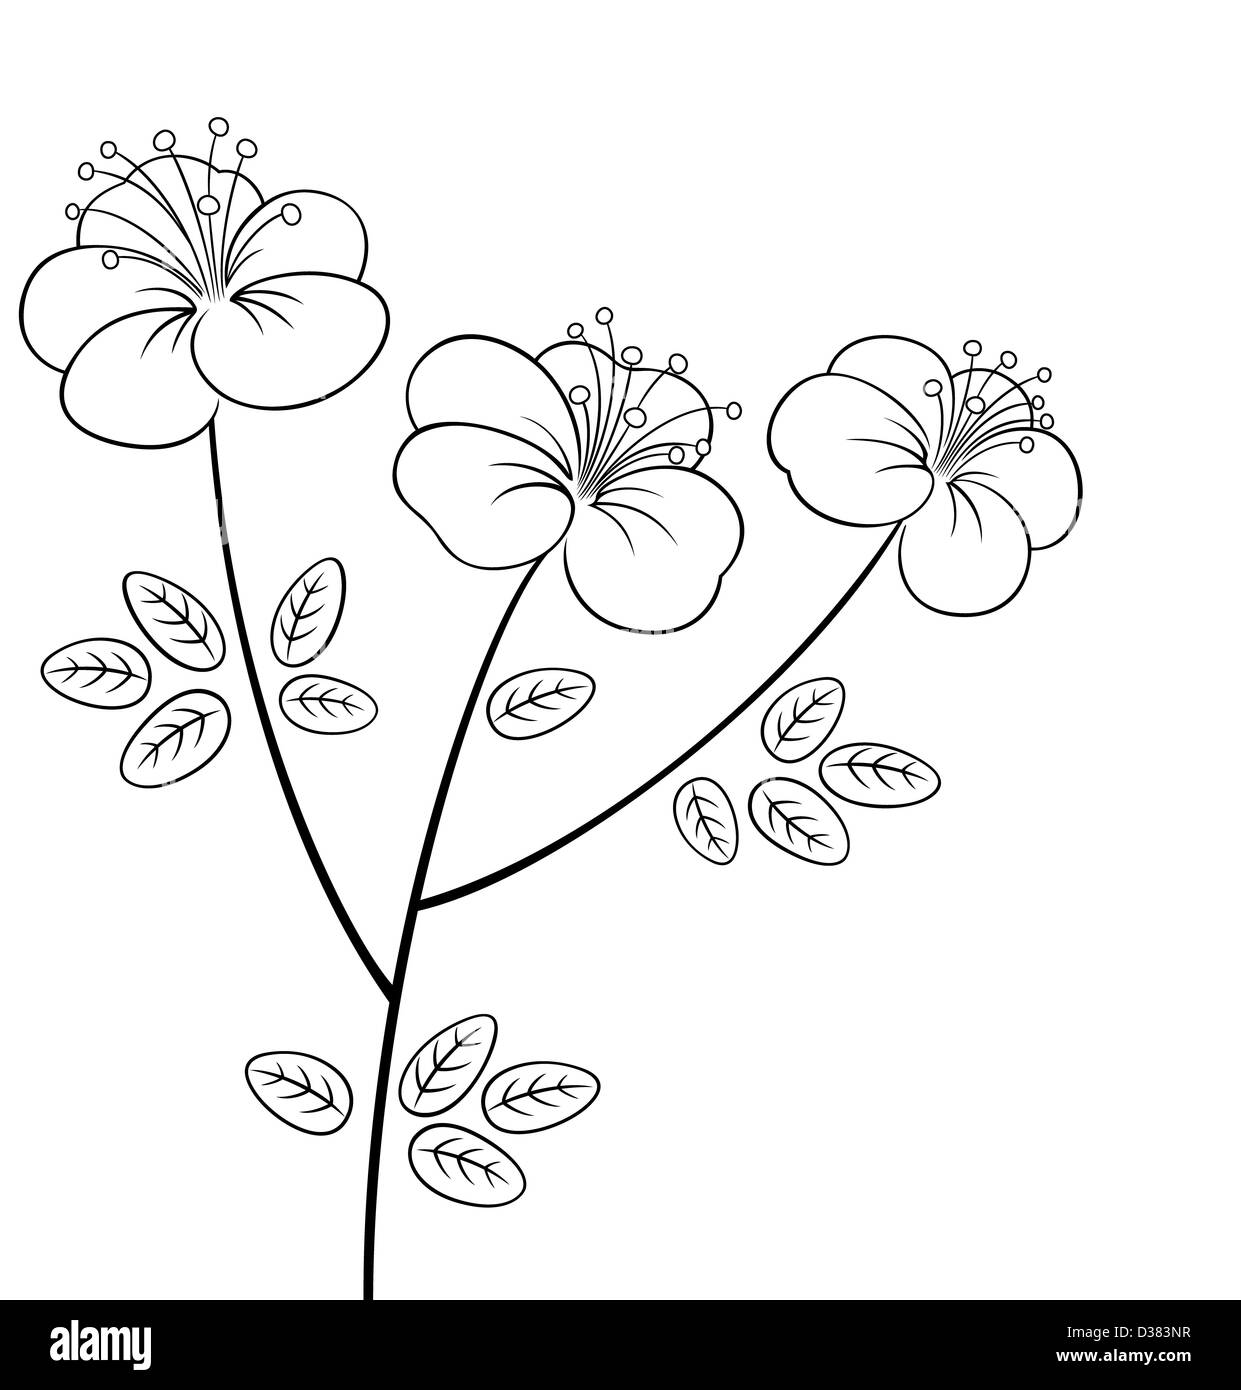 3b3f226a693 Flower Line Black and White Stock Photos   Images - Alamy